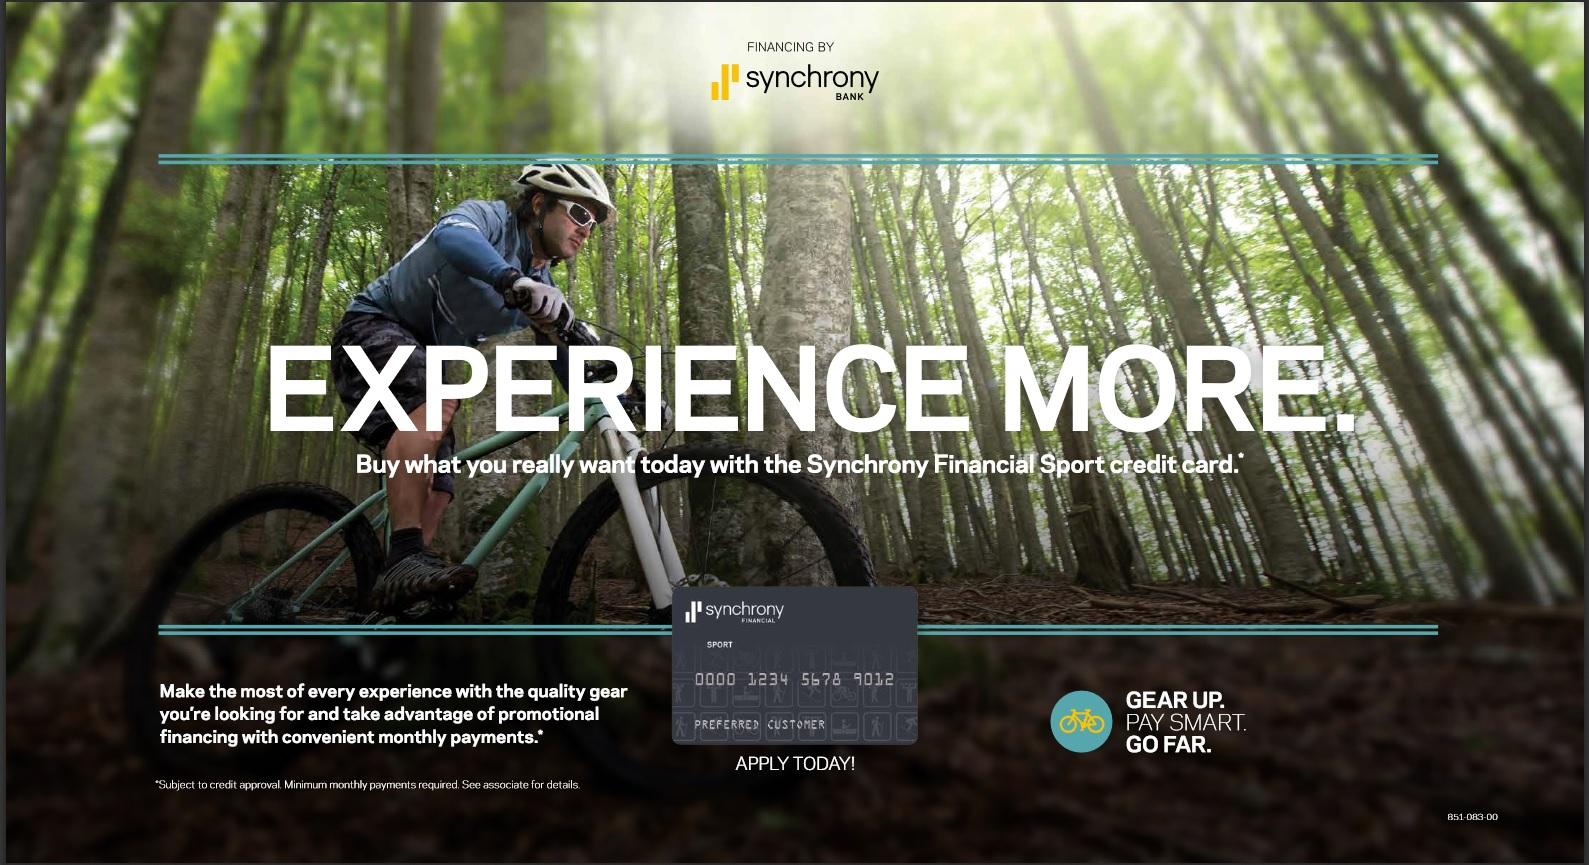 Financing by Synchrony Advertising Image